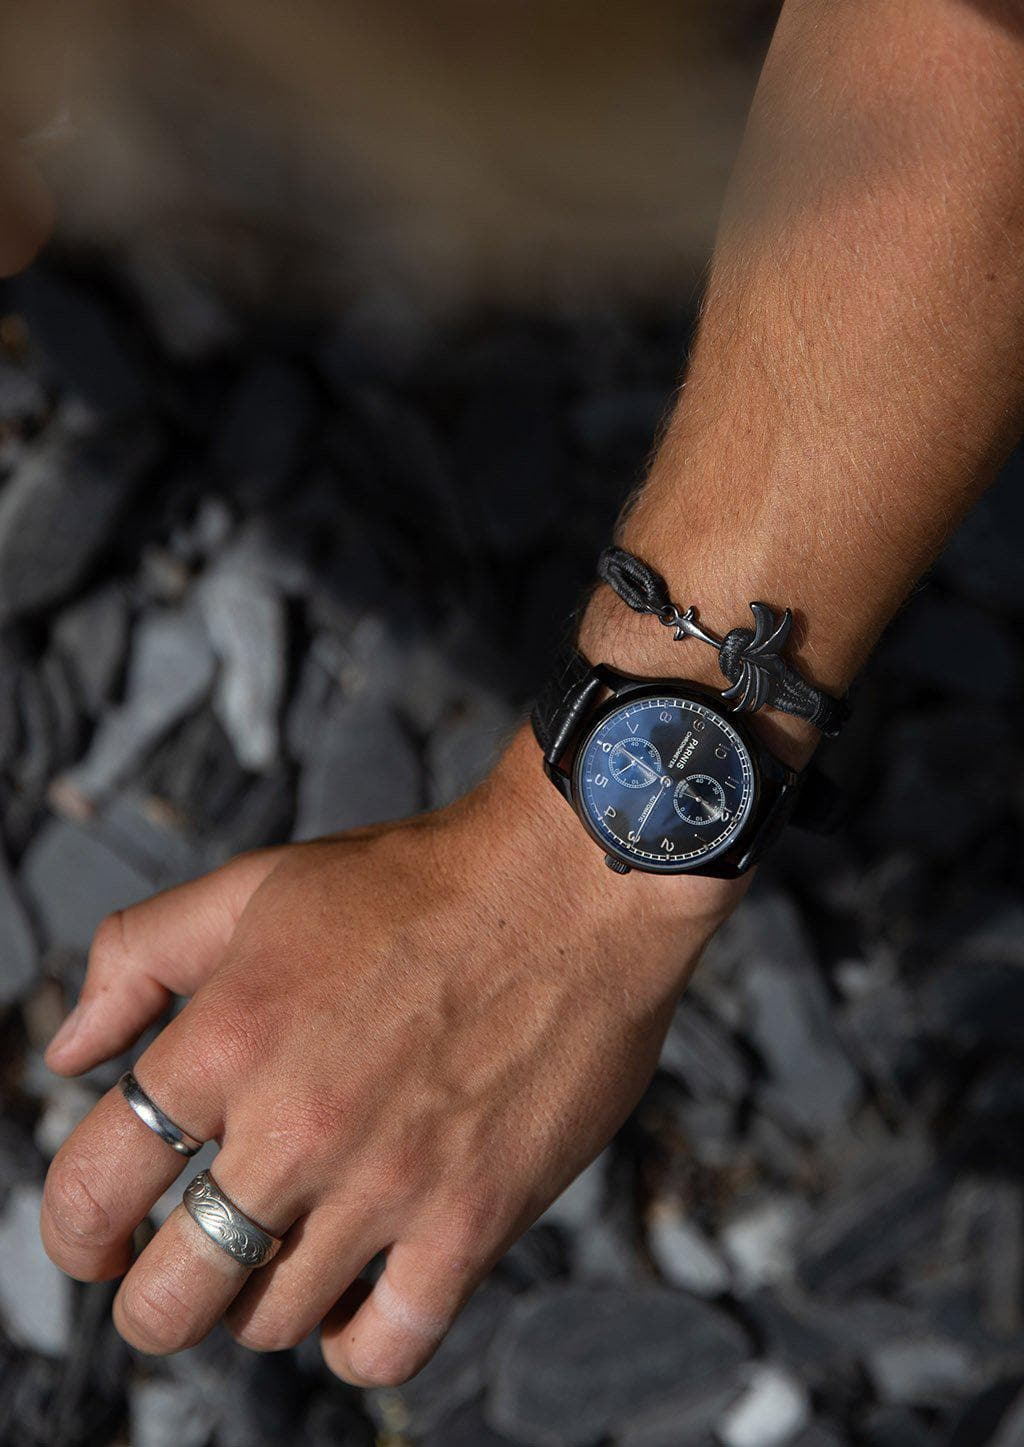 Phantom Black - Single - Season two Palm anchor bracelet with black and grey nylon band. On models hand.